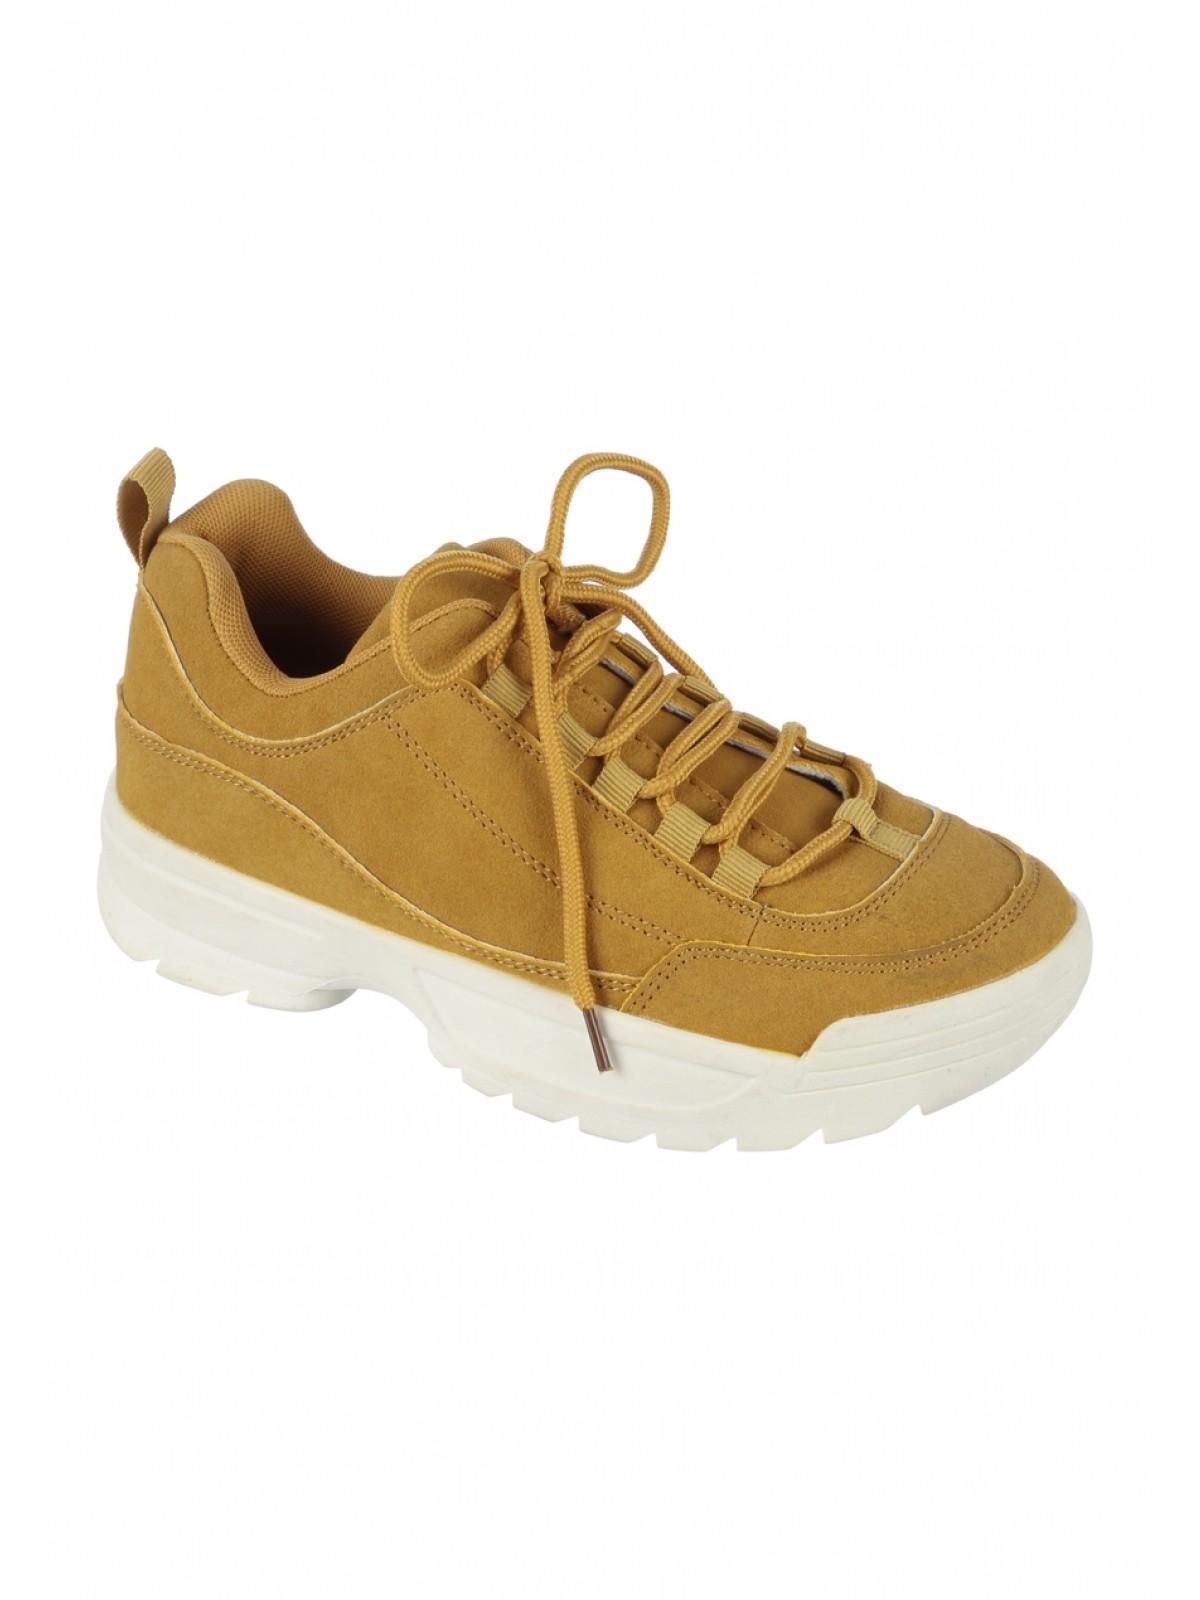 1e55c068ba921 Home; Womens Mustard Chunky Trainers. Back. PreviousNext